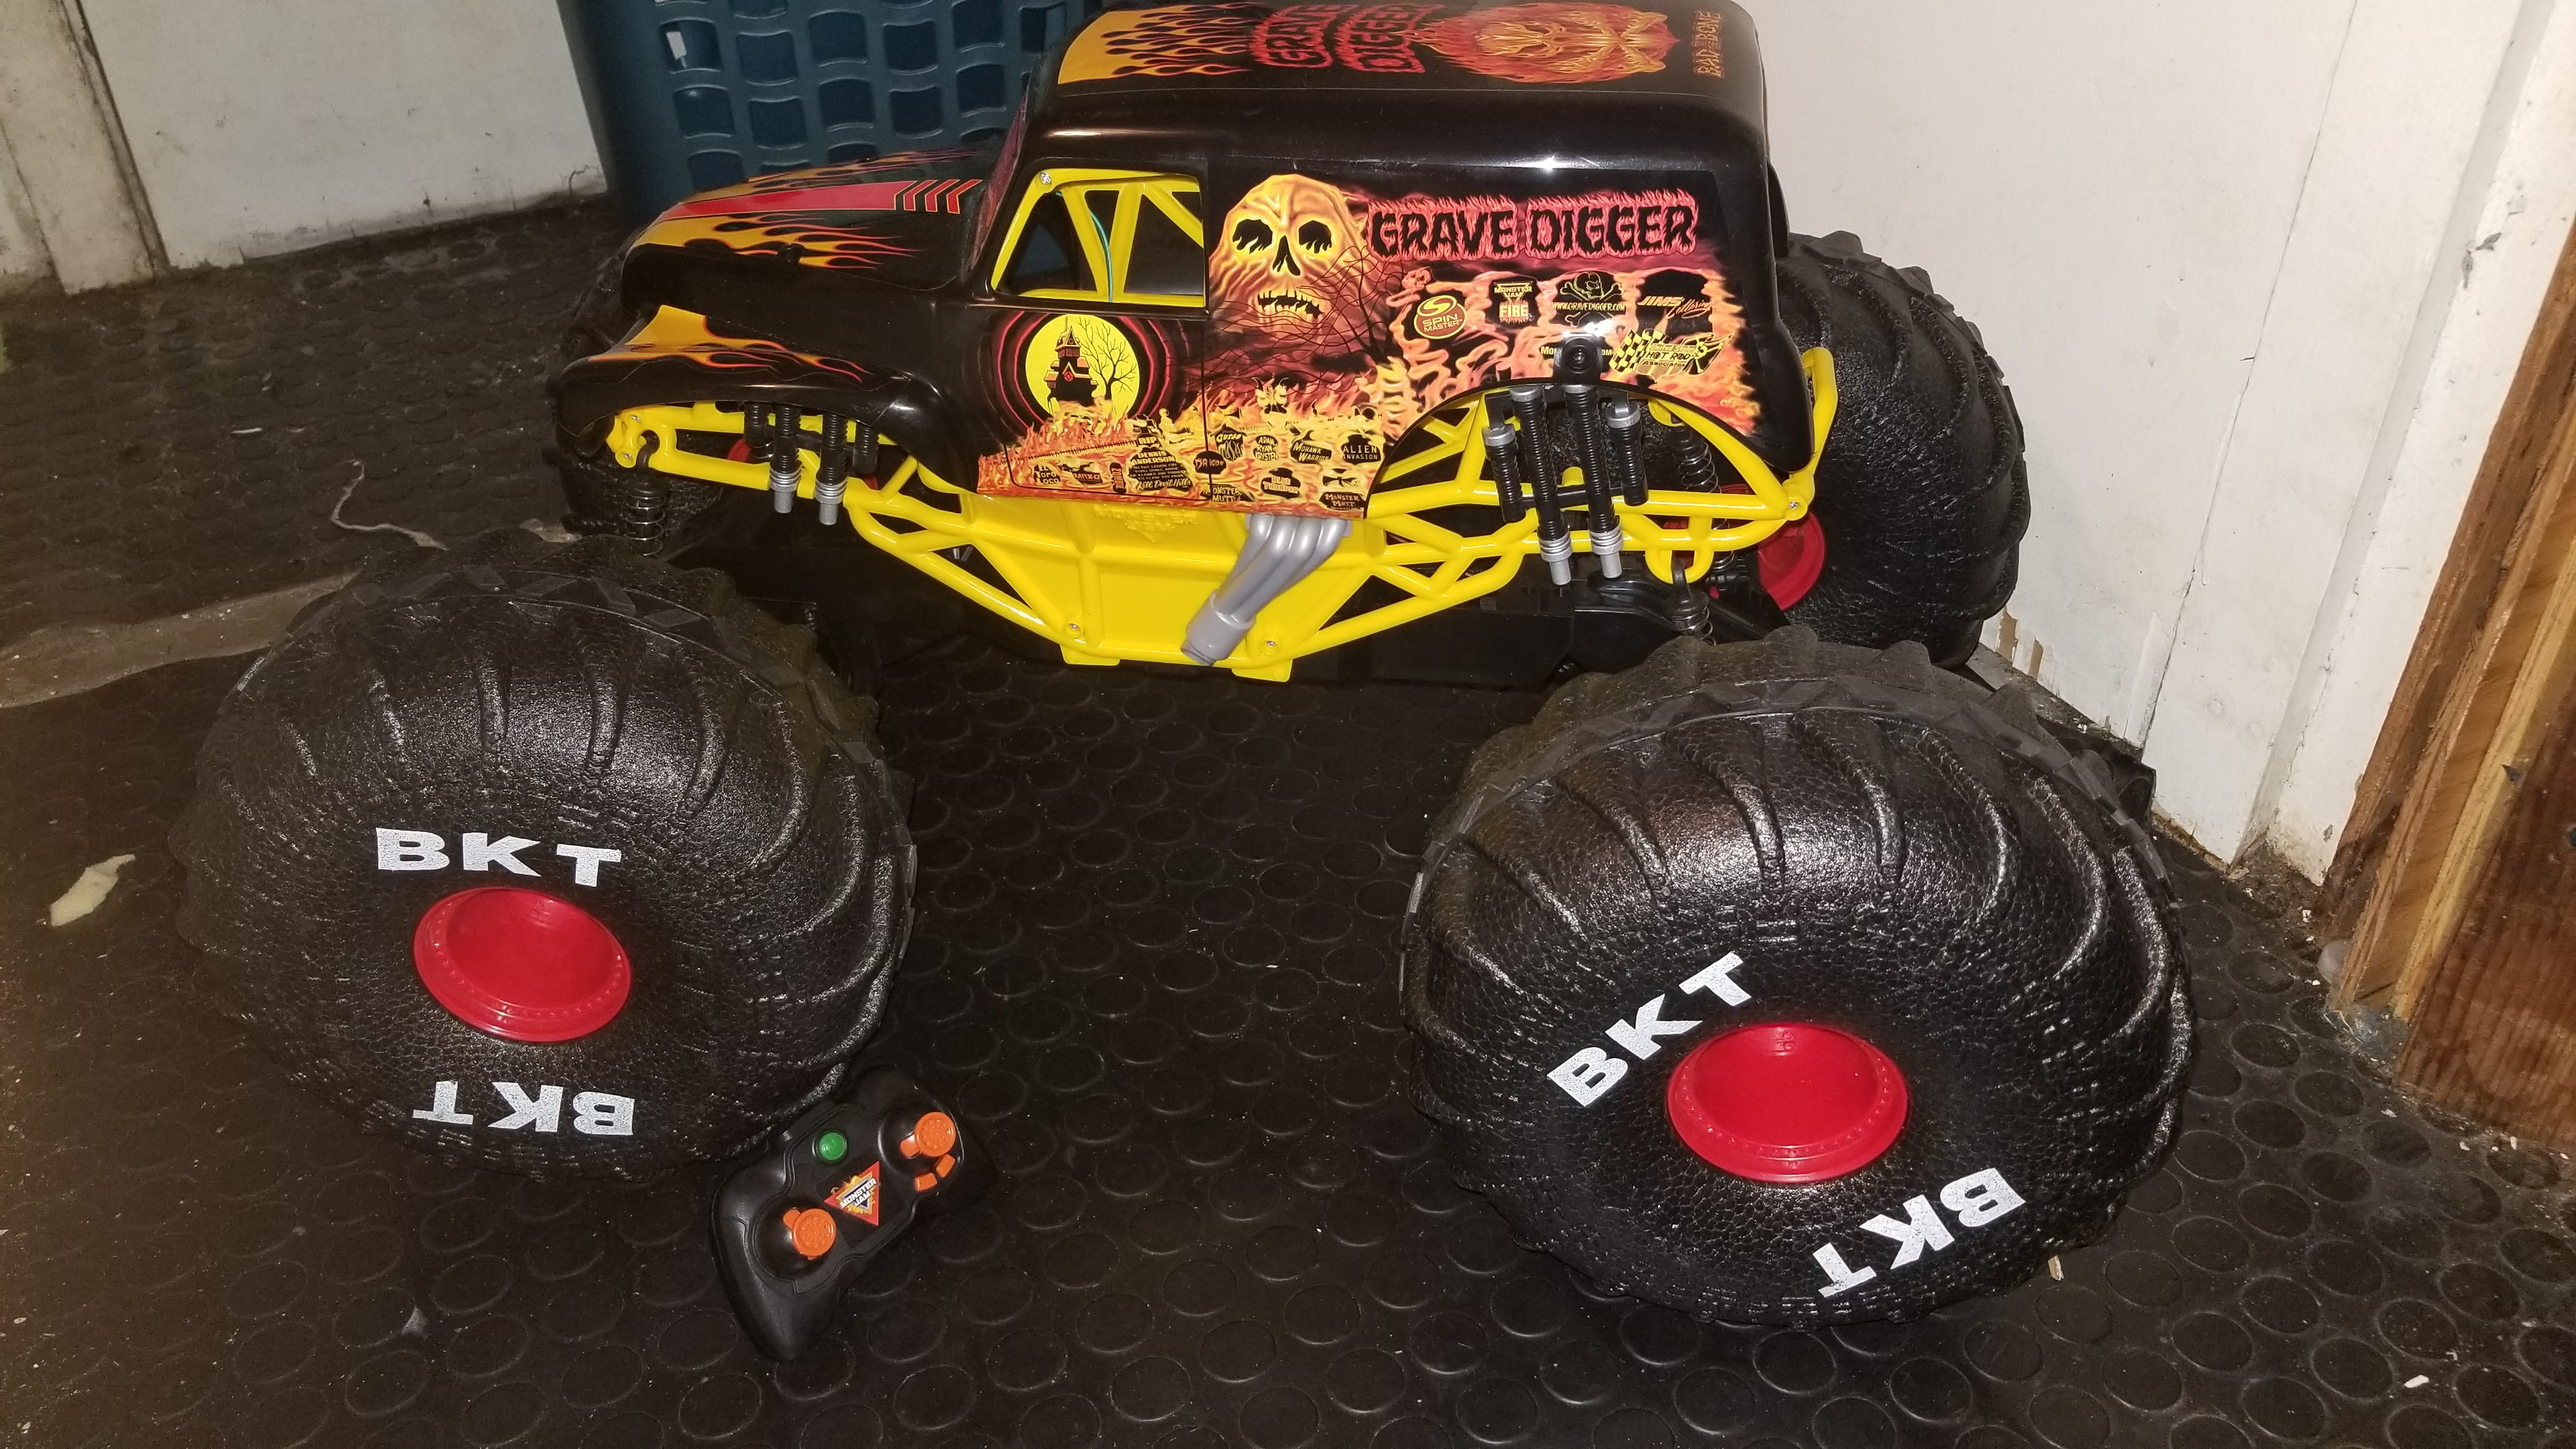 Monster Jam Official Fire Ice Mega Grave Digger All Terrain Remote Control Monster Truck Reviews In Remote Control Toys Familyrated